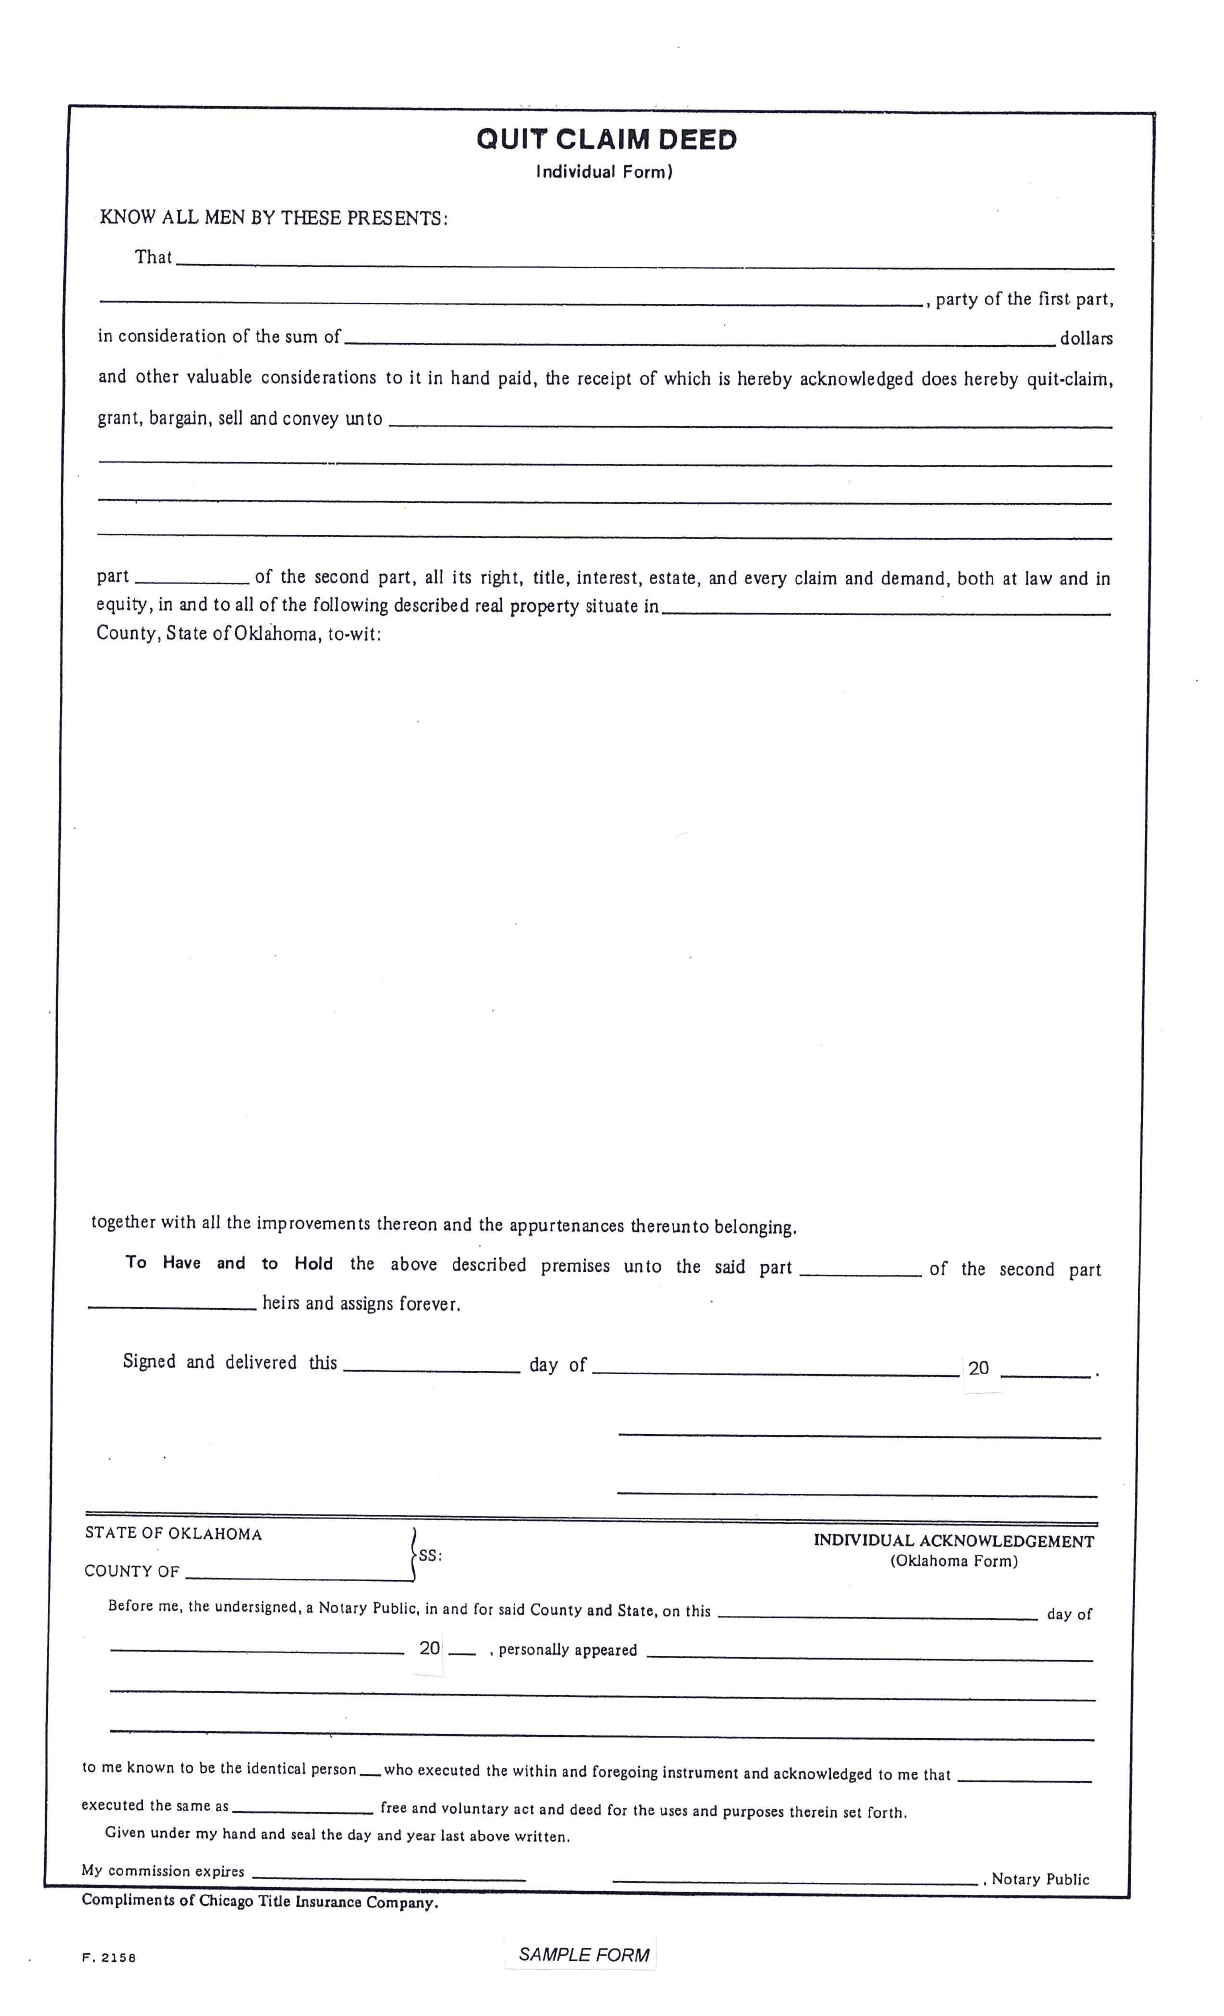 Quit claim deed individual form oklahoma free download for Quit claim deed template free download